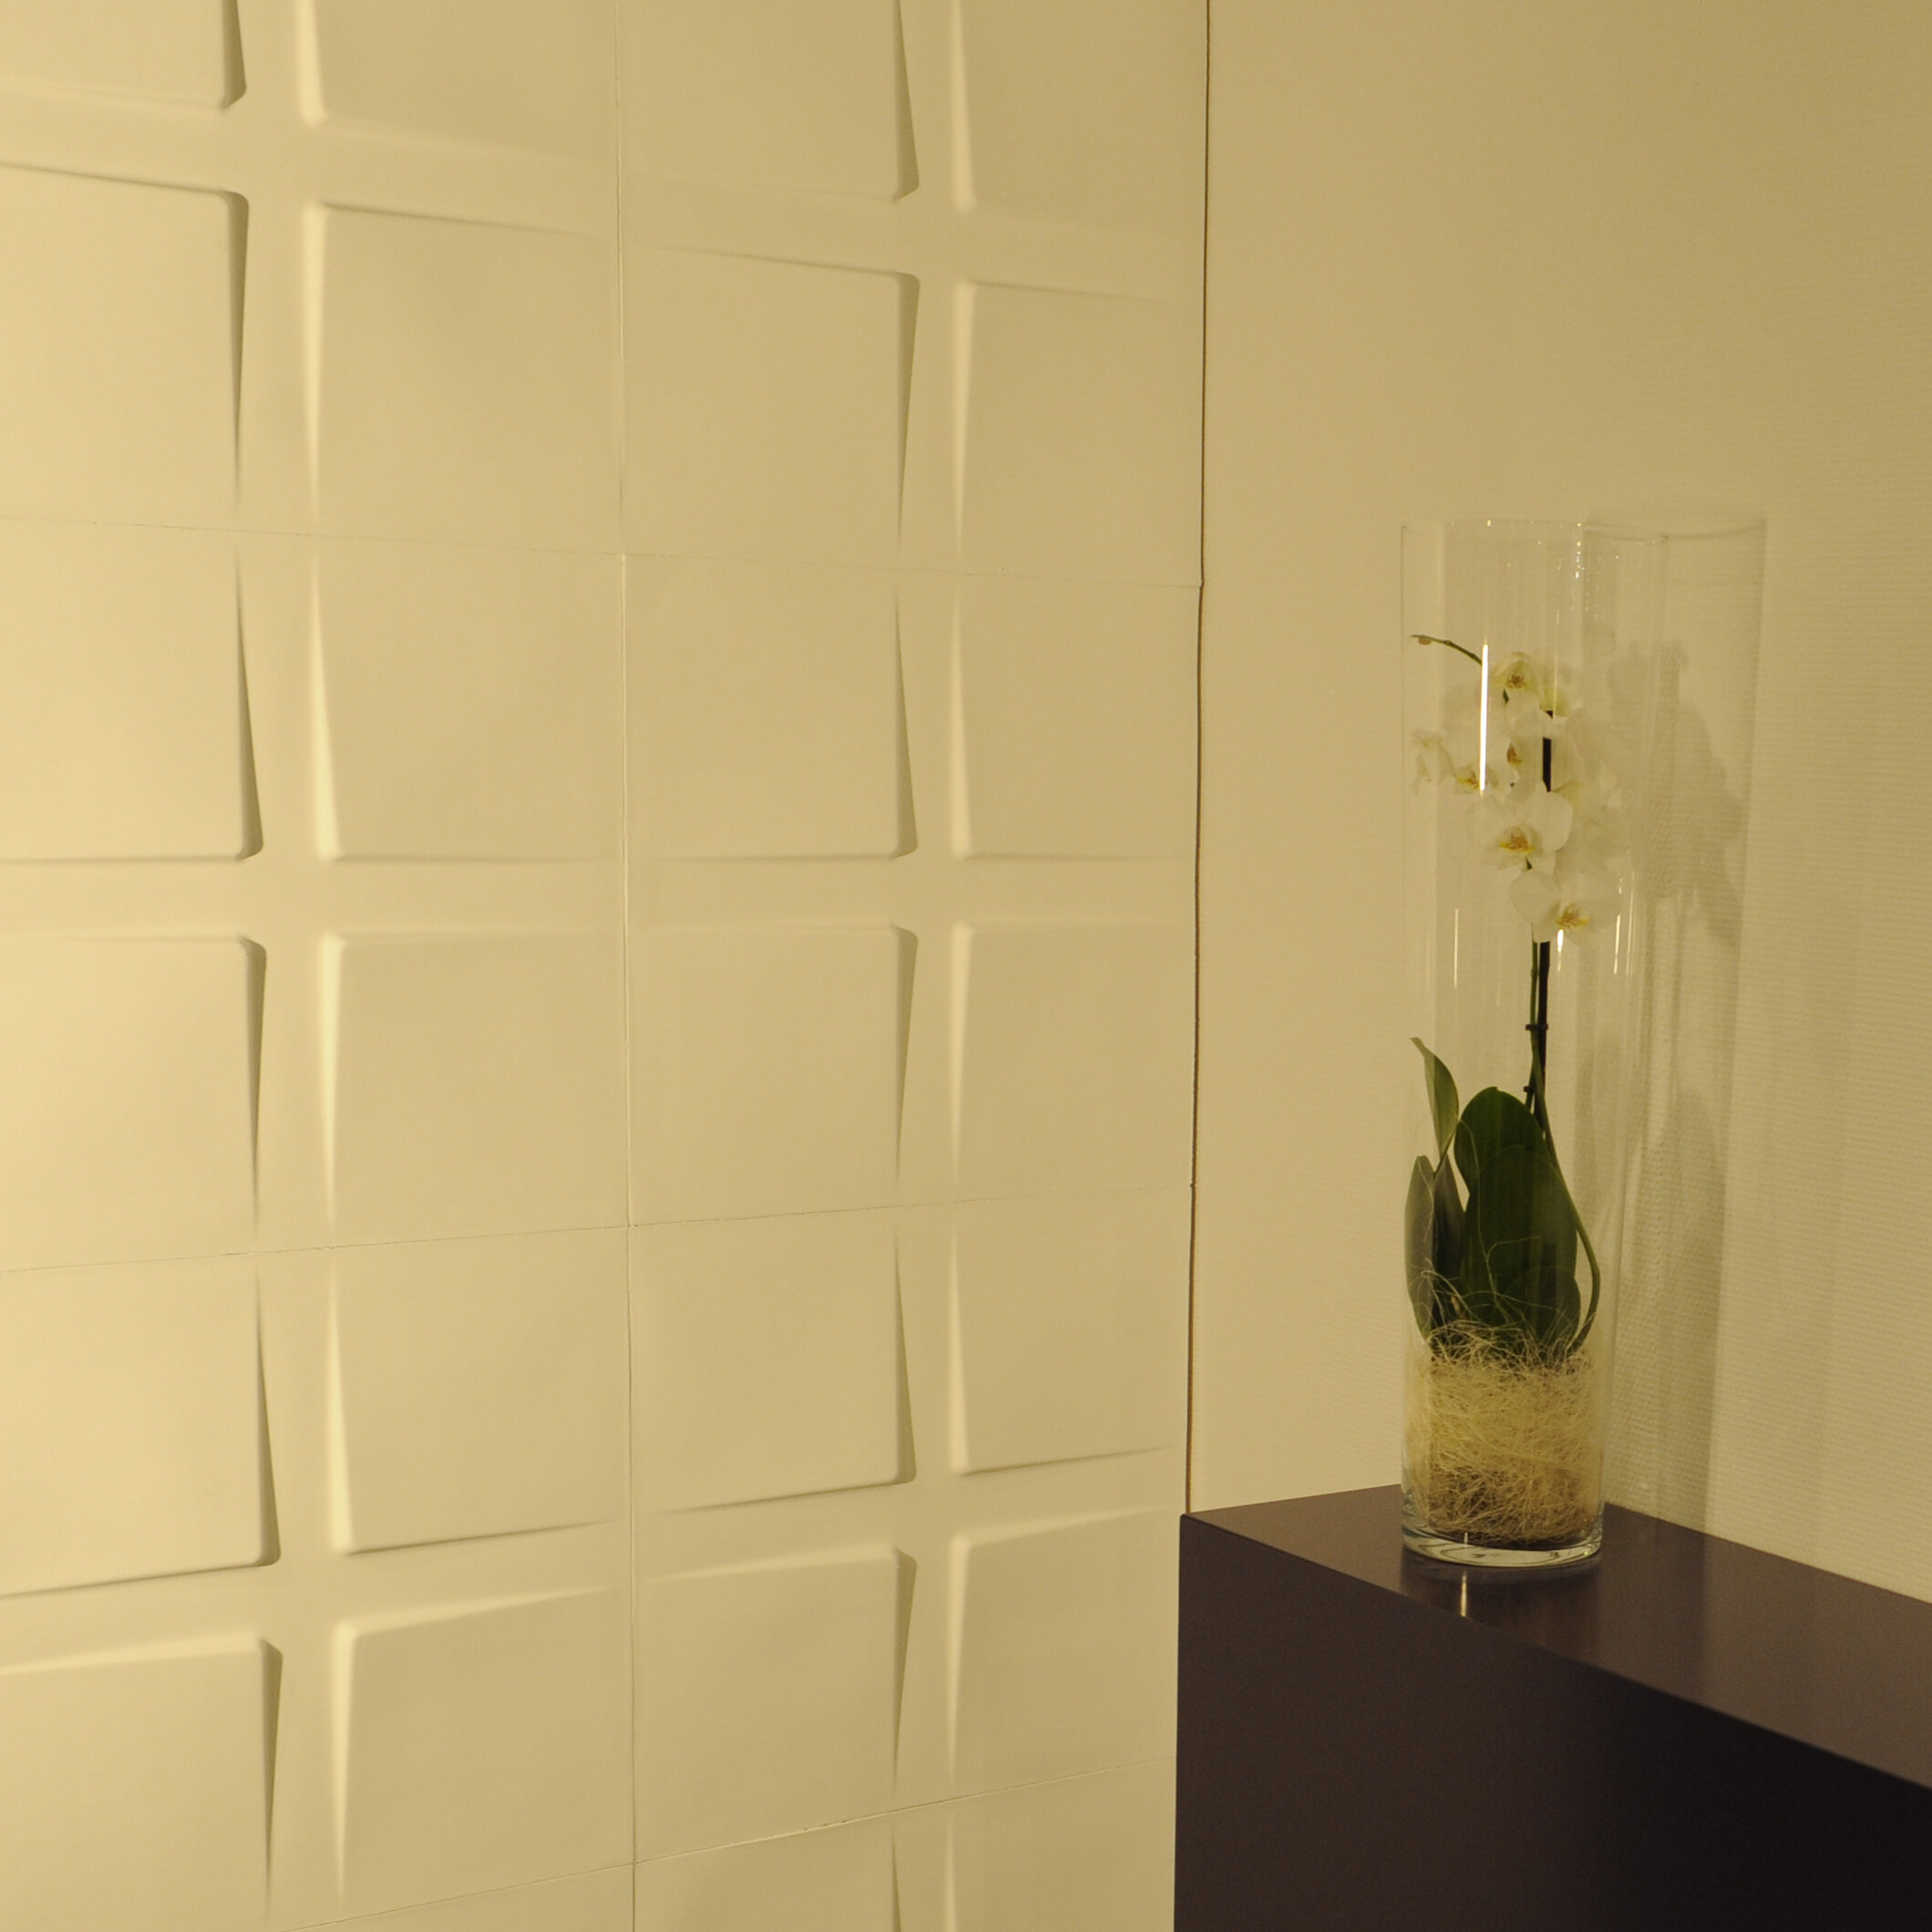 Comfortable Installing Decorative Wall Panels Images - The Wall ...